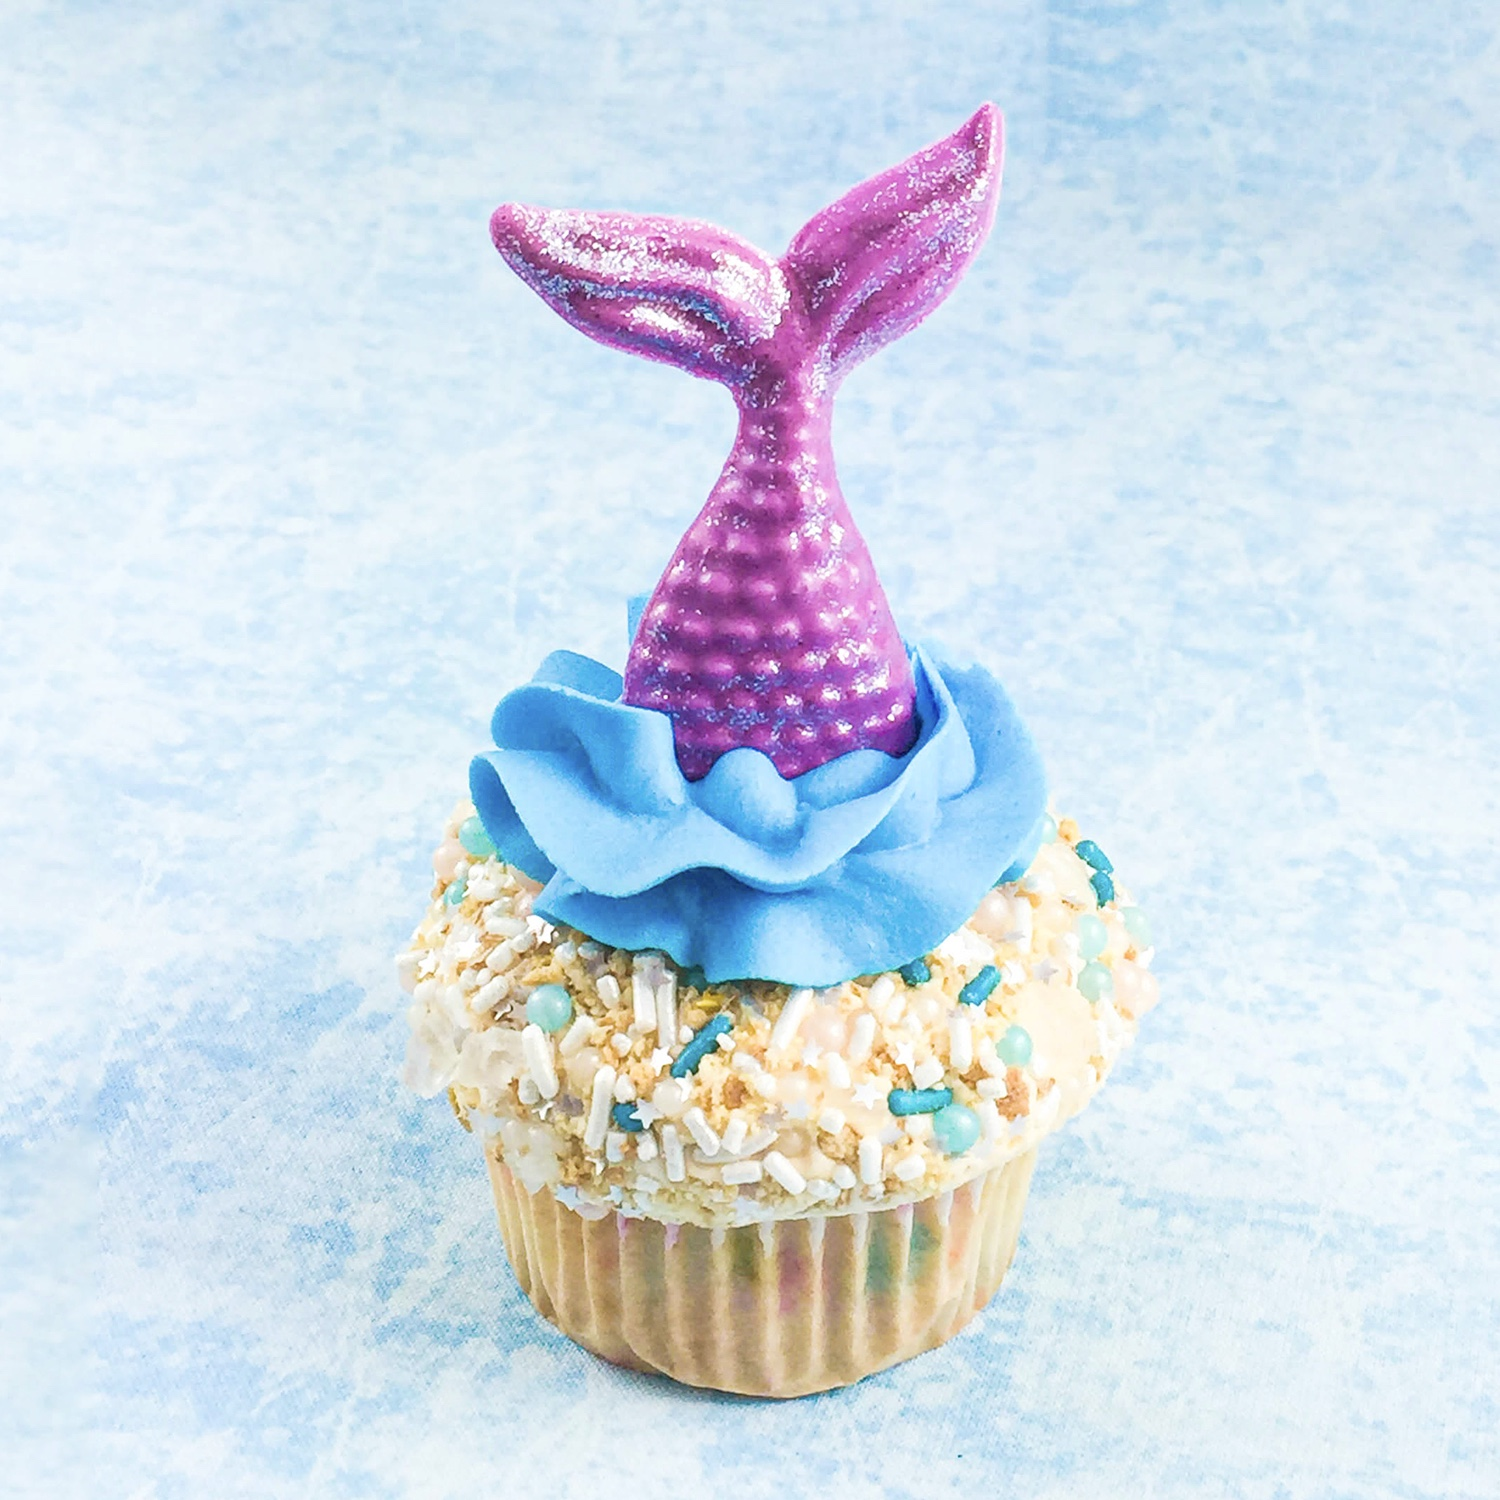 Mermaid Tail Cupcake